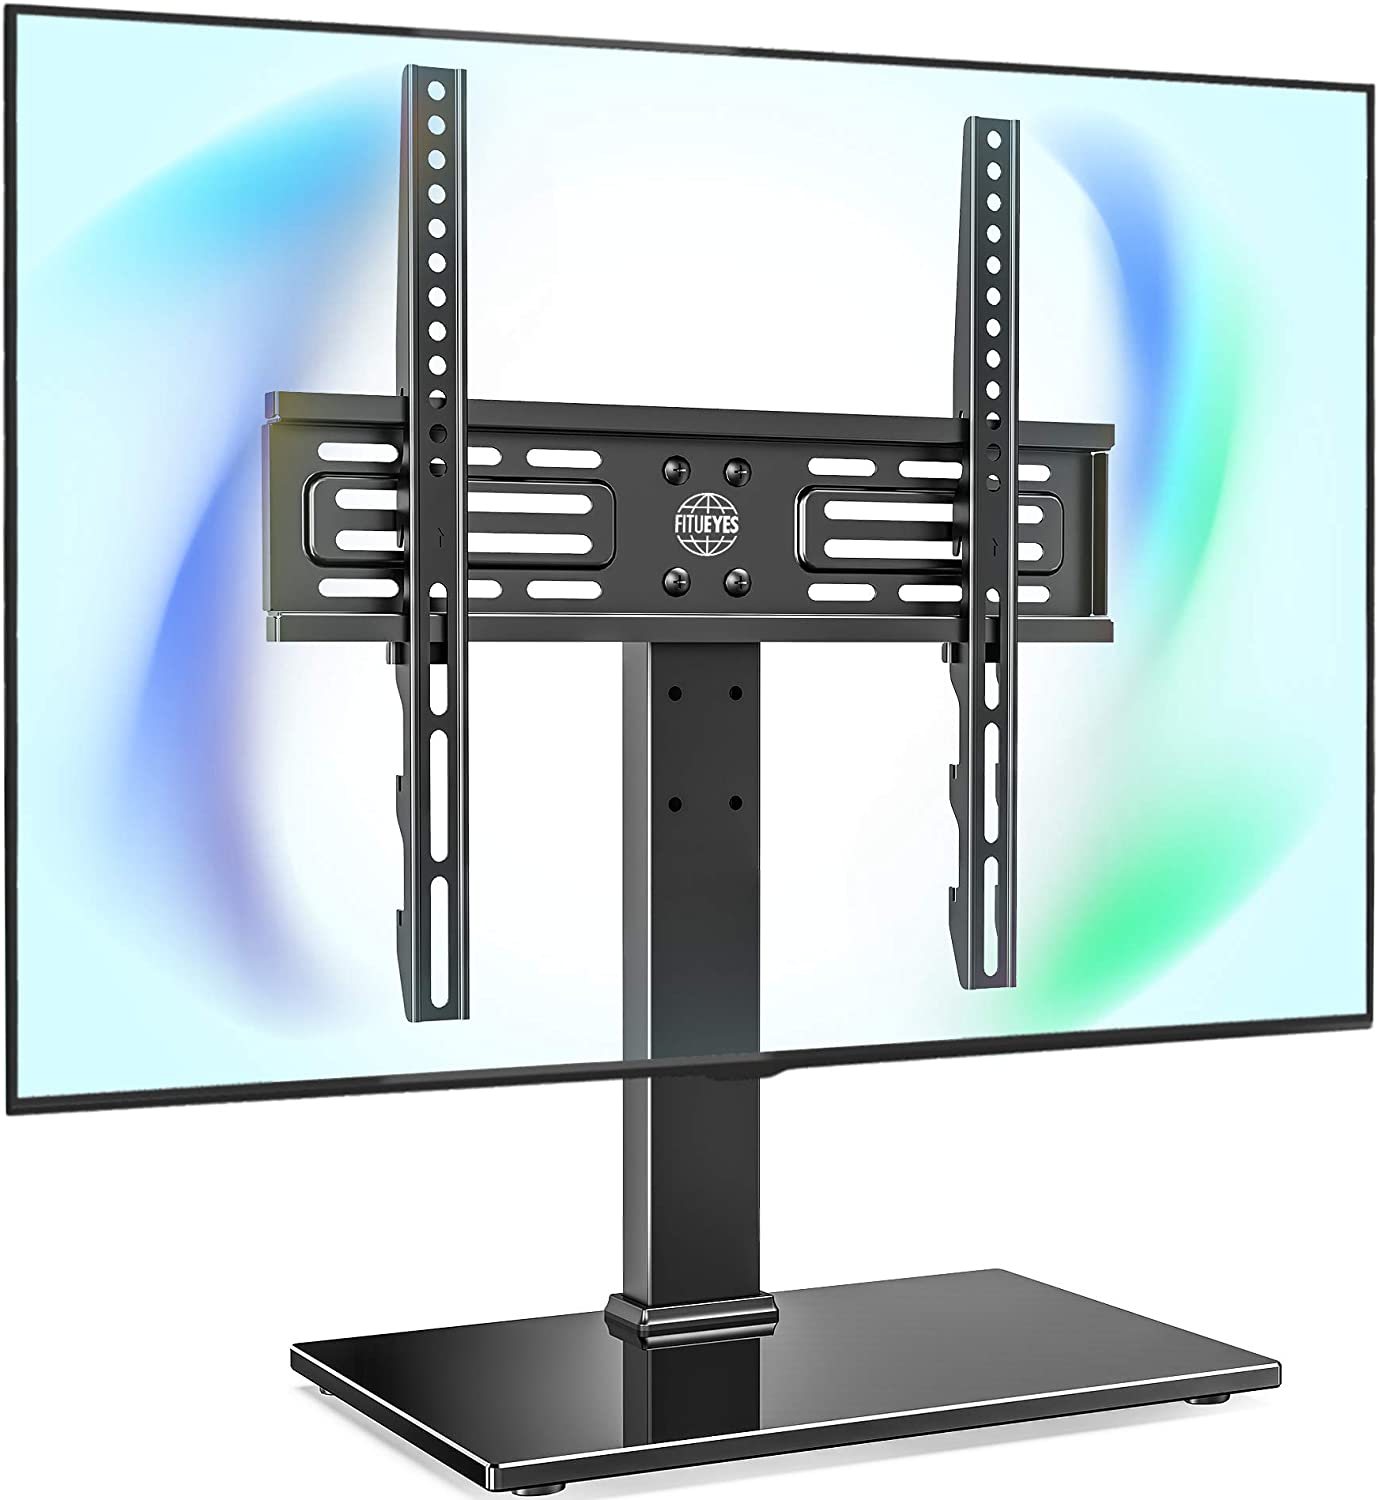 FITUEYES Universal TV Stand Table Top TV Stand for 27-55 inch LCD LED TVs 6 Level Height Adjustable TV Base with Tempered Glass Base VESA 400x400 Holds up to 88lbs TT103701GB: Furniture & Decor